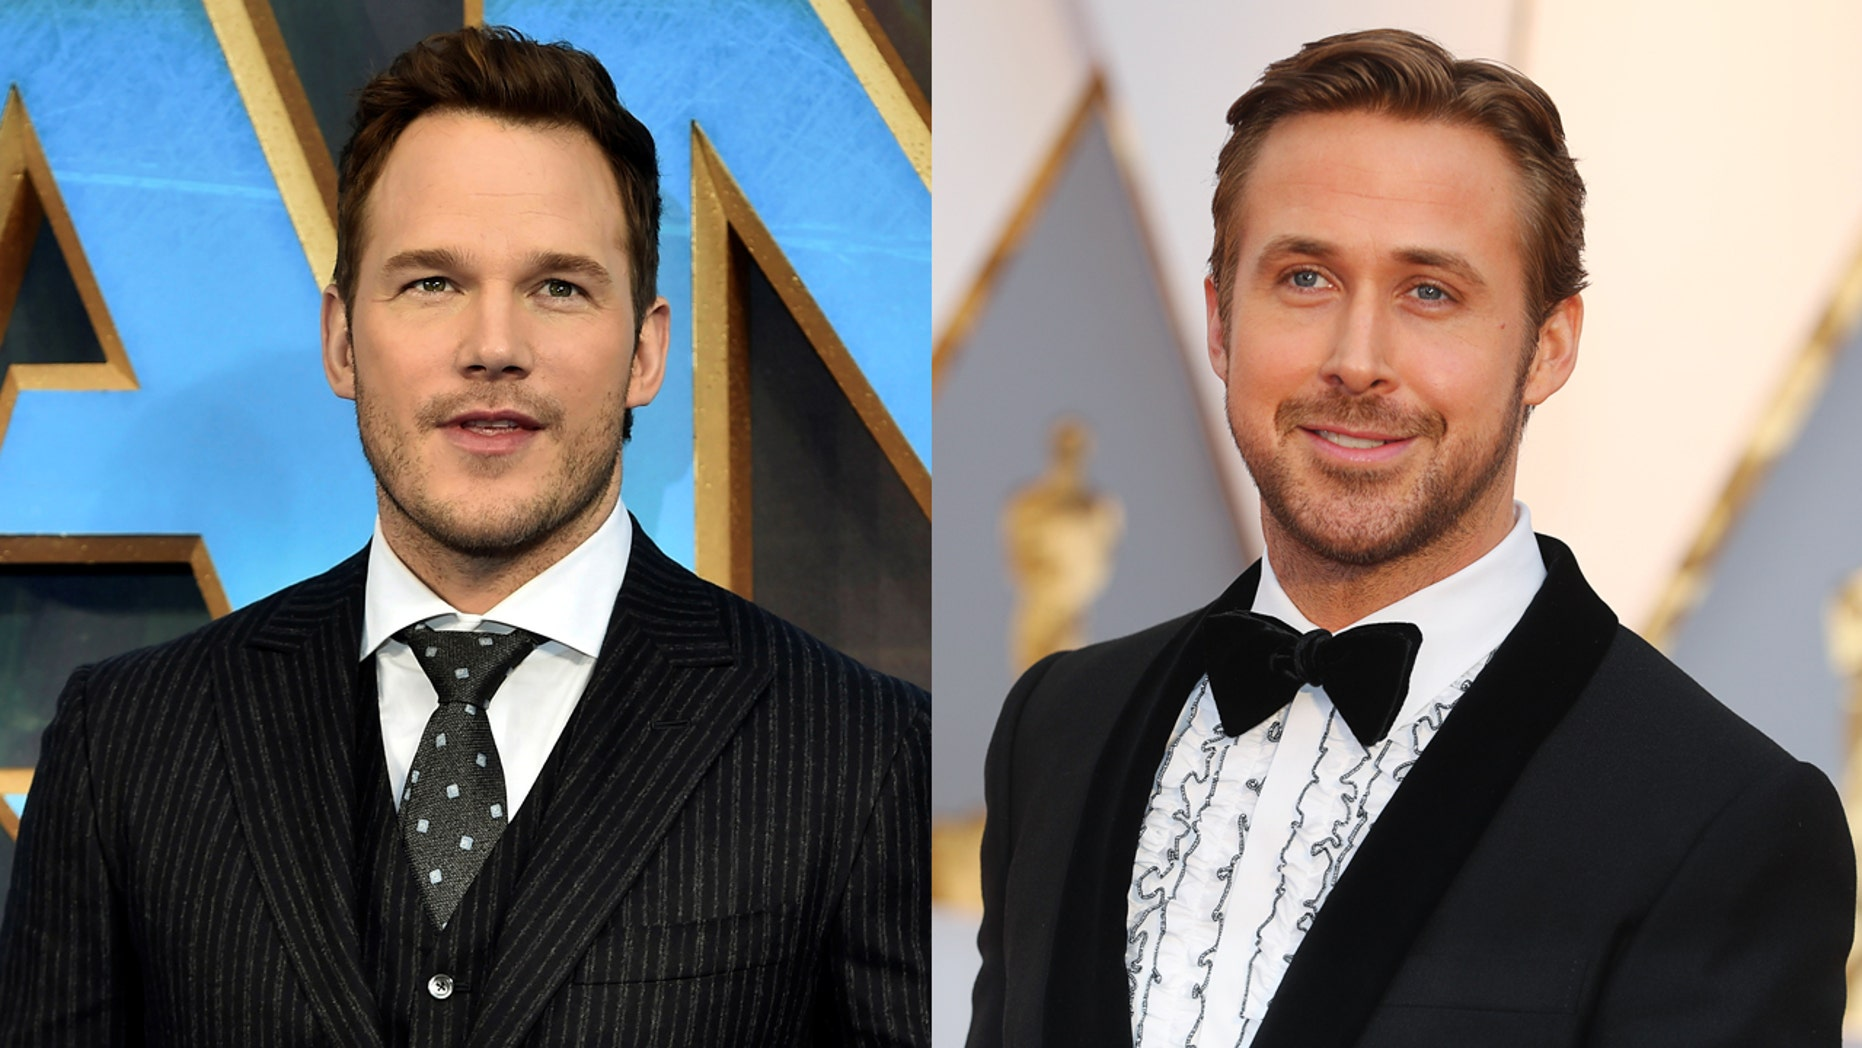 Chris Pratt, left, and Ryan Gosling are some of the most-sought after Hollywood male leading actors today.